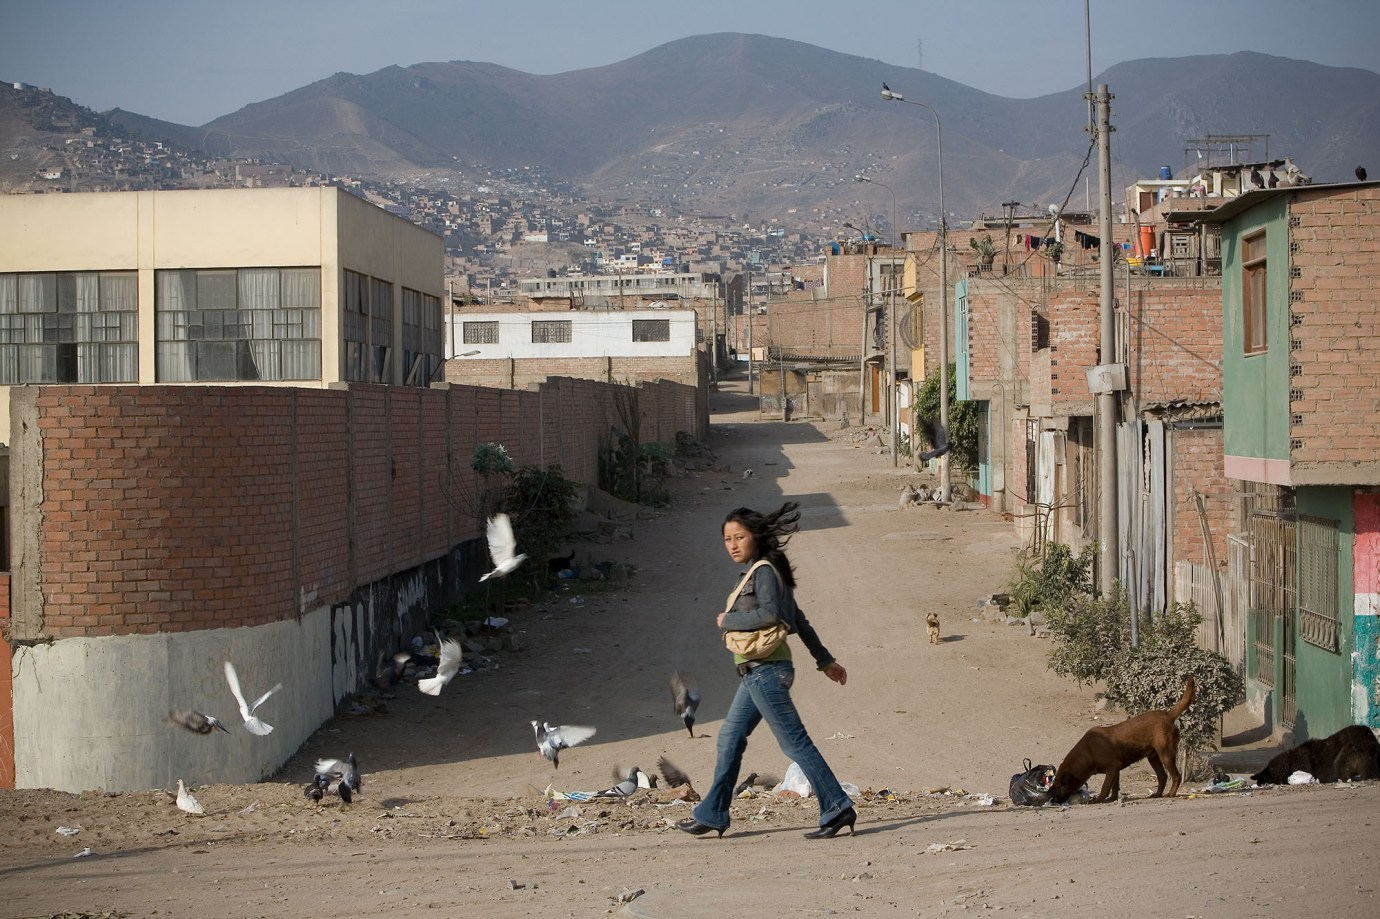 A young woman struts through San Juan de Miraflores, a suburb of Lima, Peru.